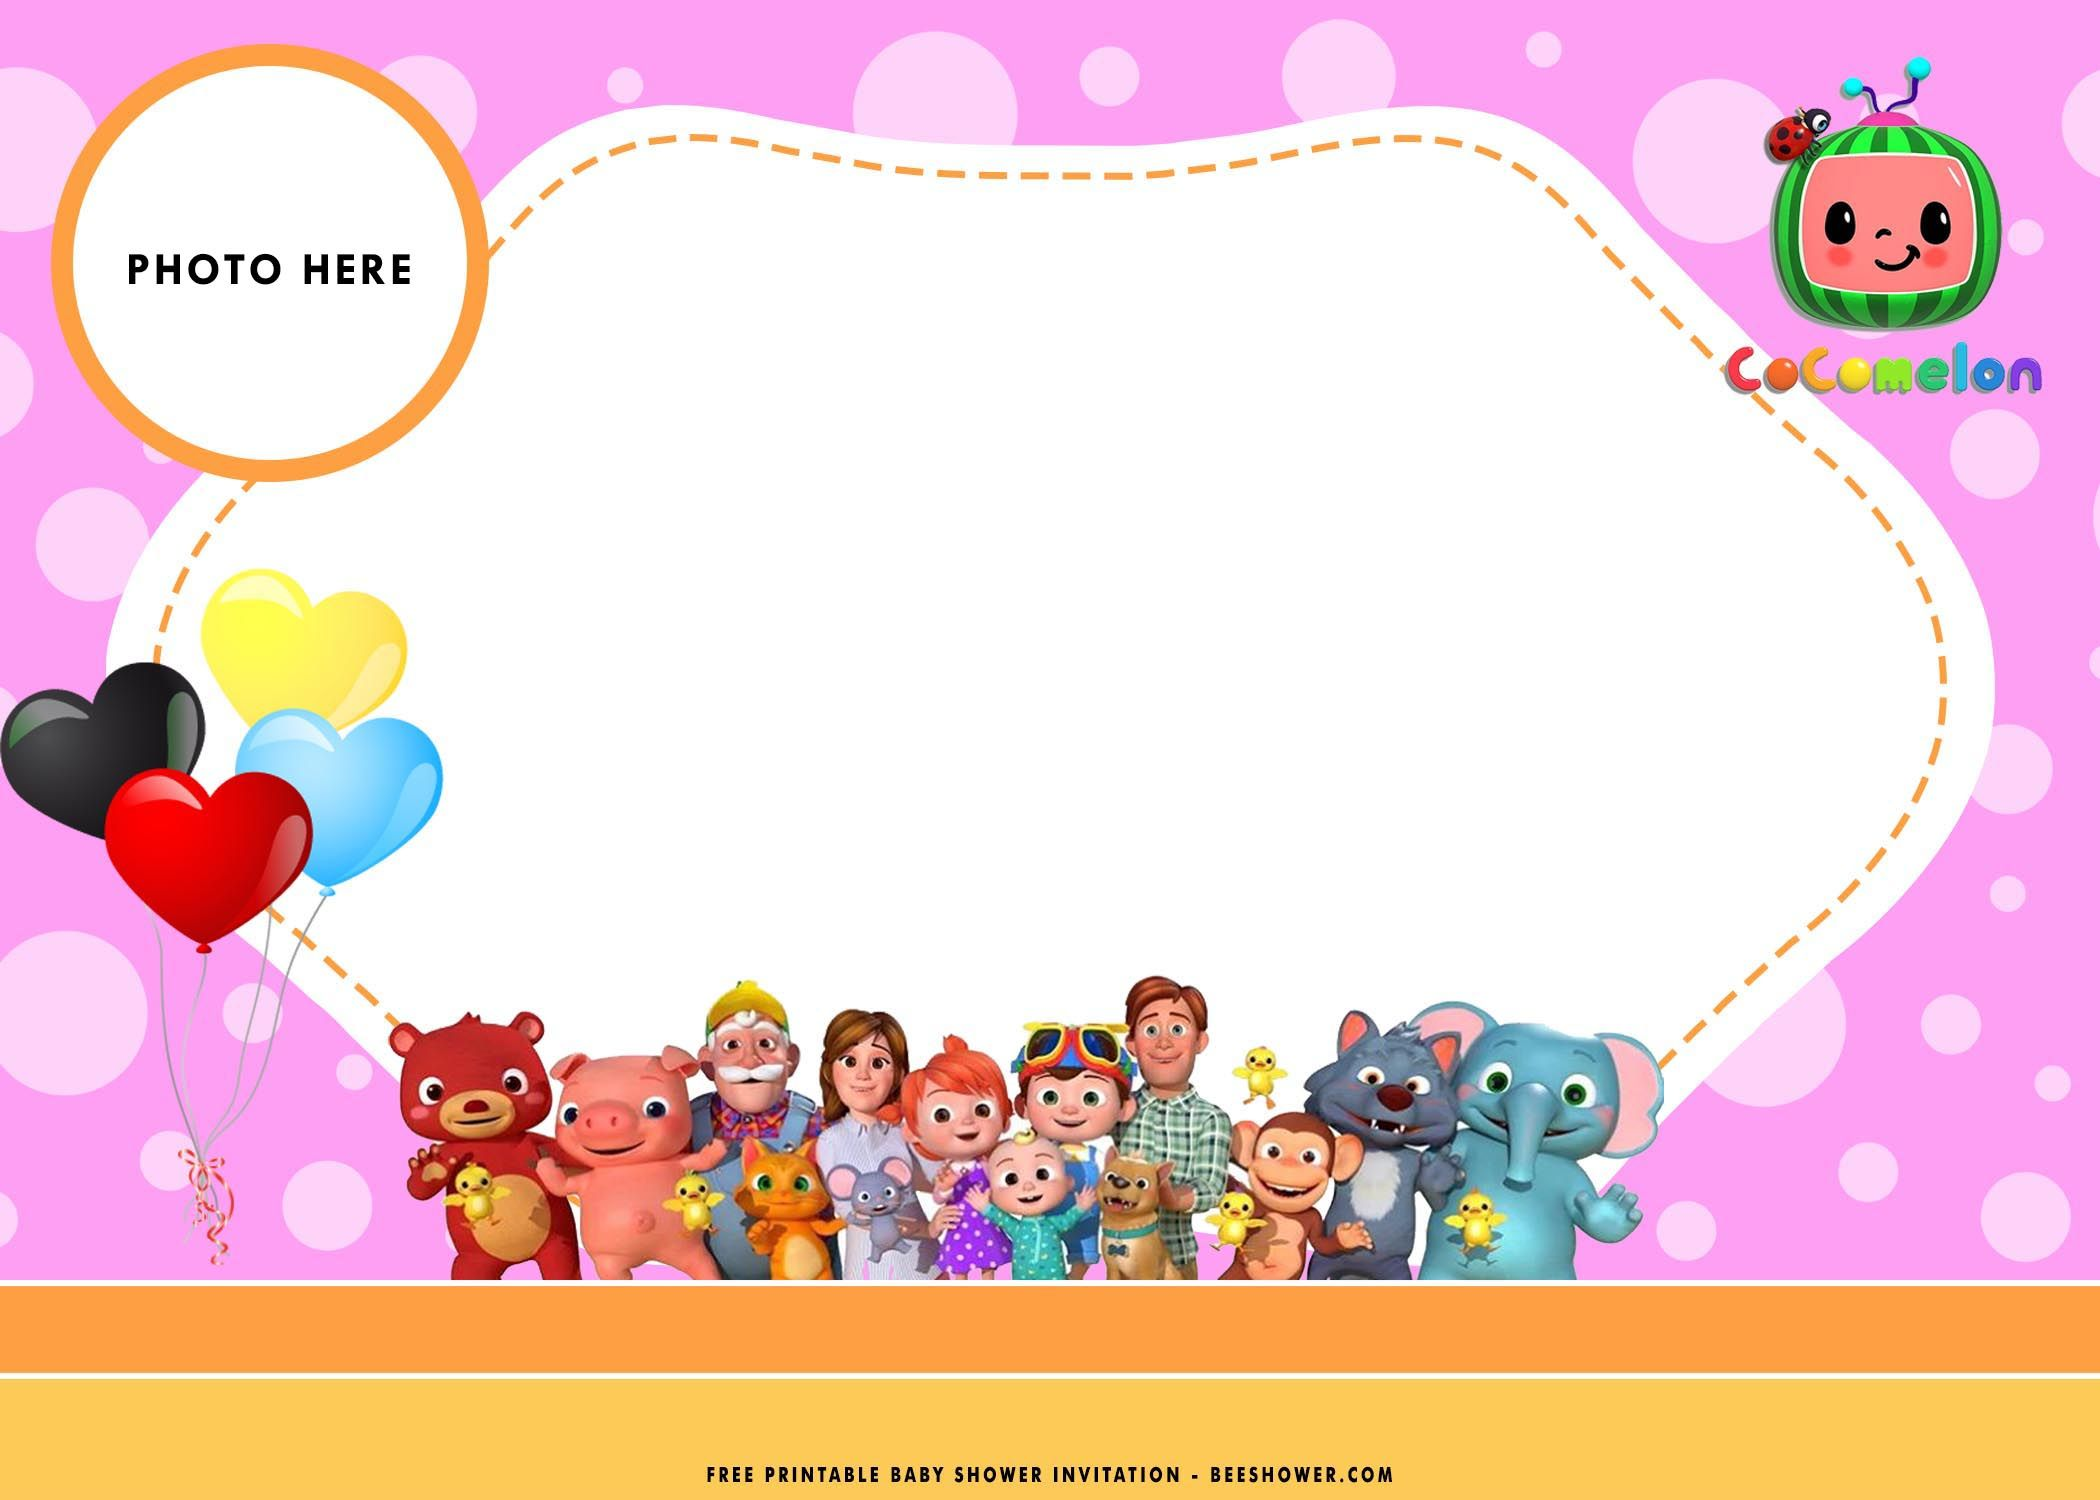 Free Printable Cocomelon Baby Shower Invitation Templ Free Printable Baby Shower Invitations Baby Birthday Invitation Card Baby Shower Invitation Templates